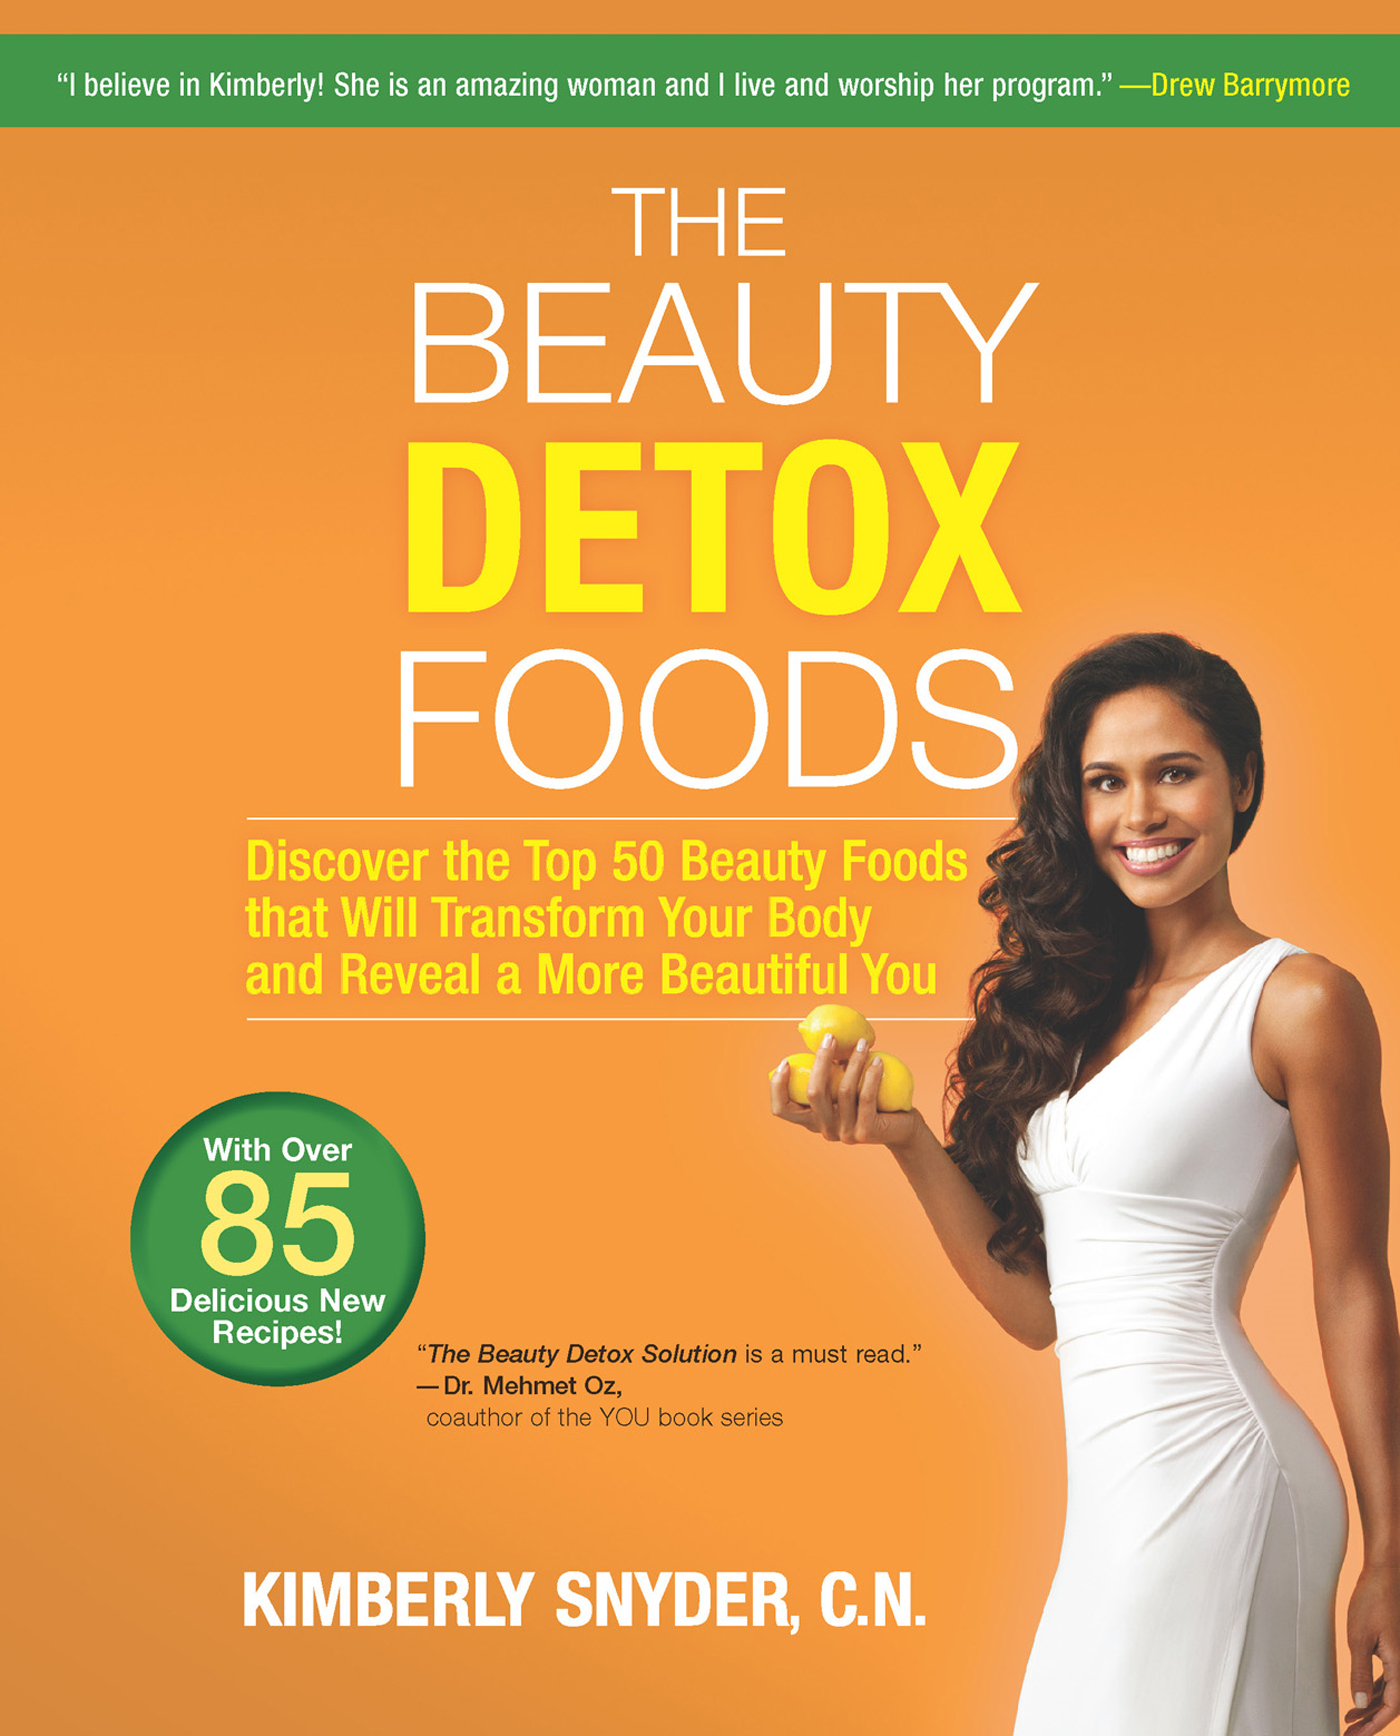 The Beauty Detox Foods